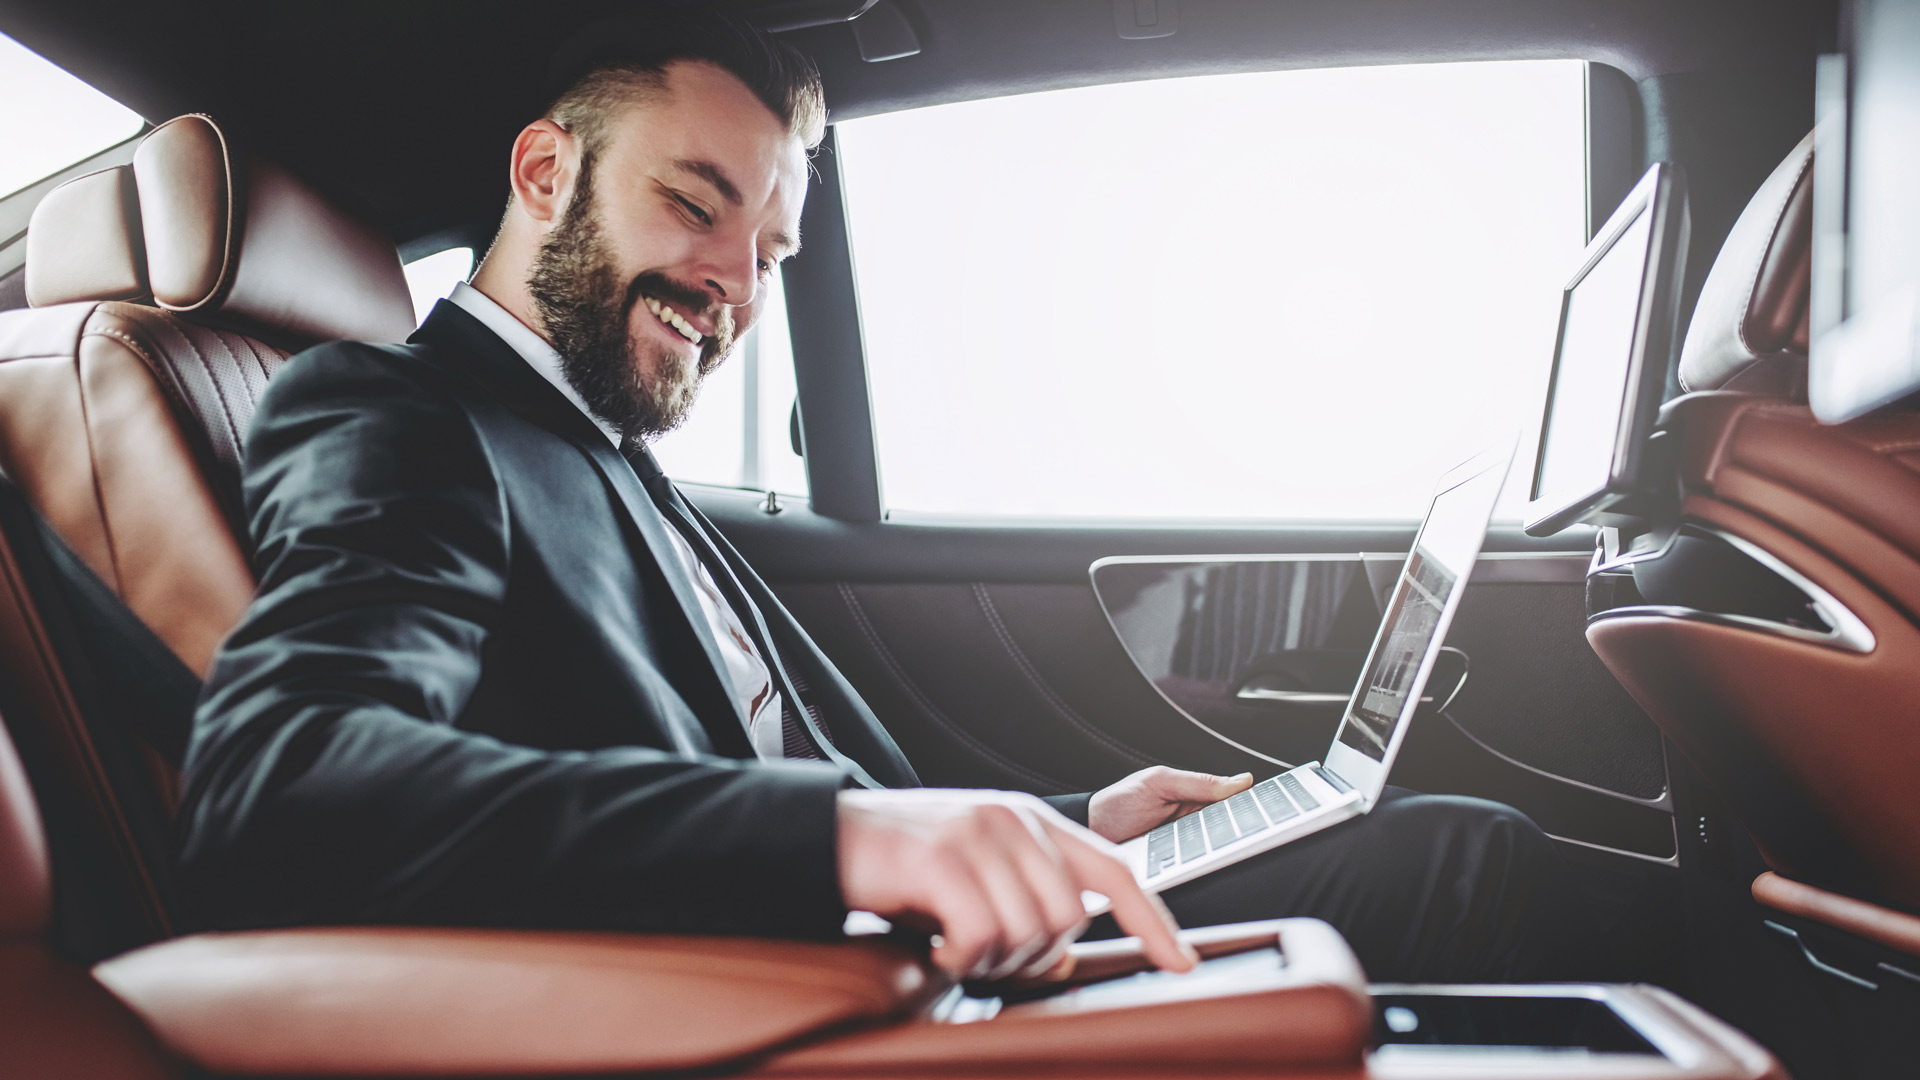 Young handsome businessman is sitting in luxury car. Serious bearded man in suit is working with laptop while being in trip.